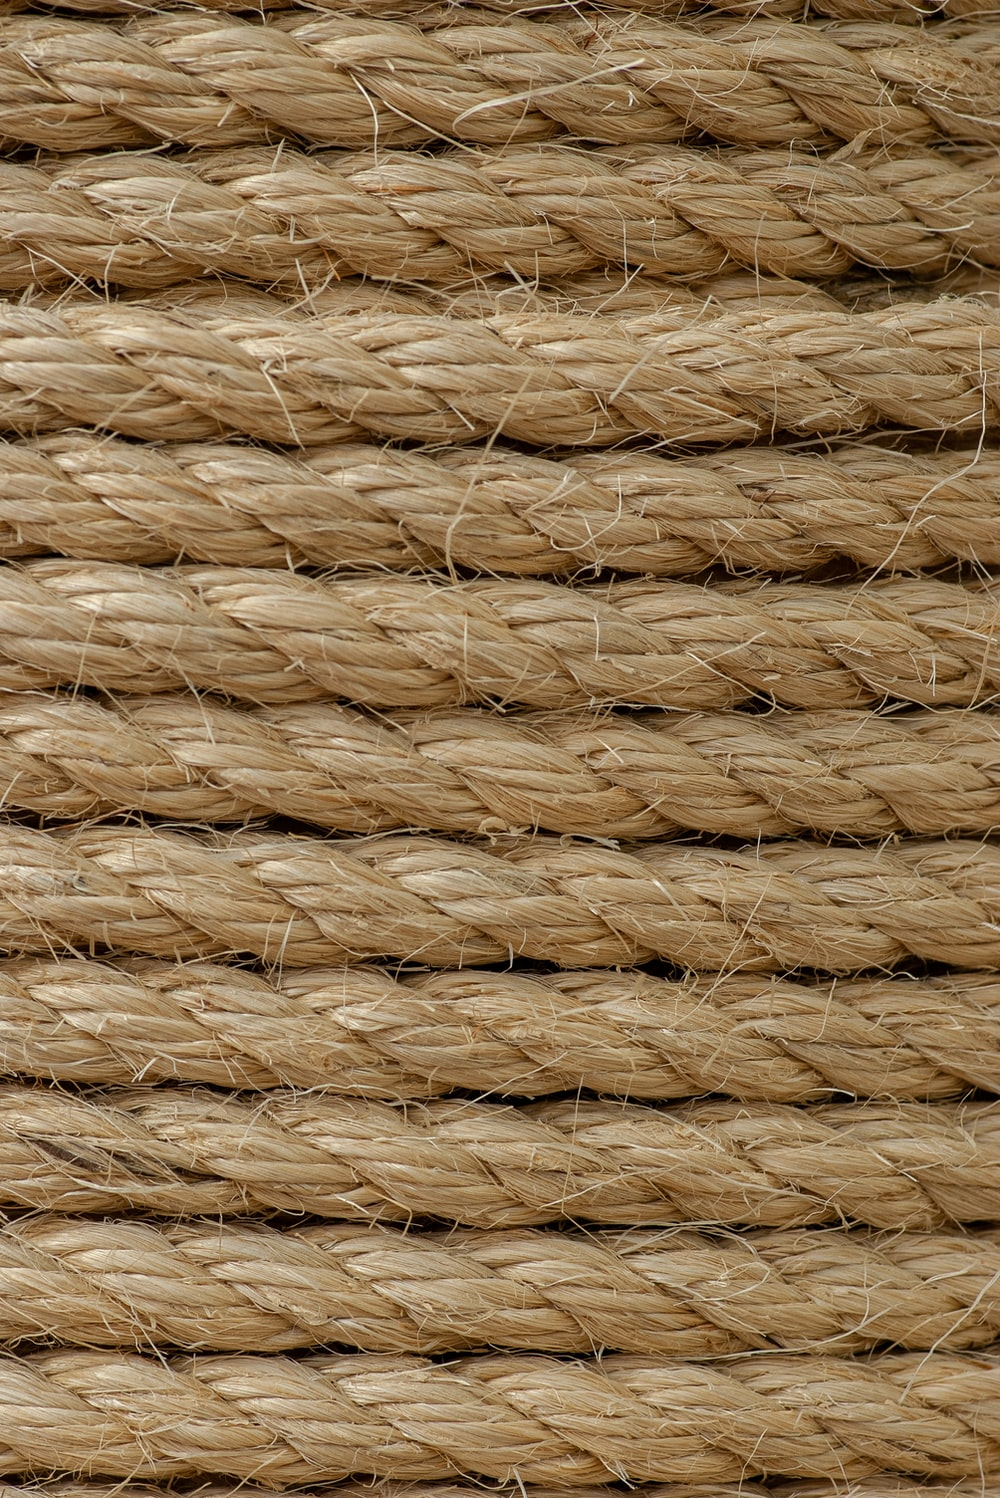 brown rope close-up photography